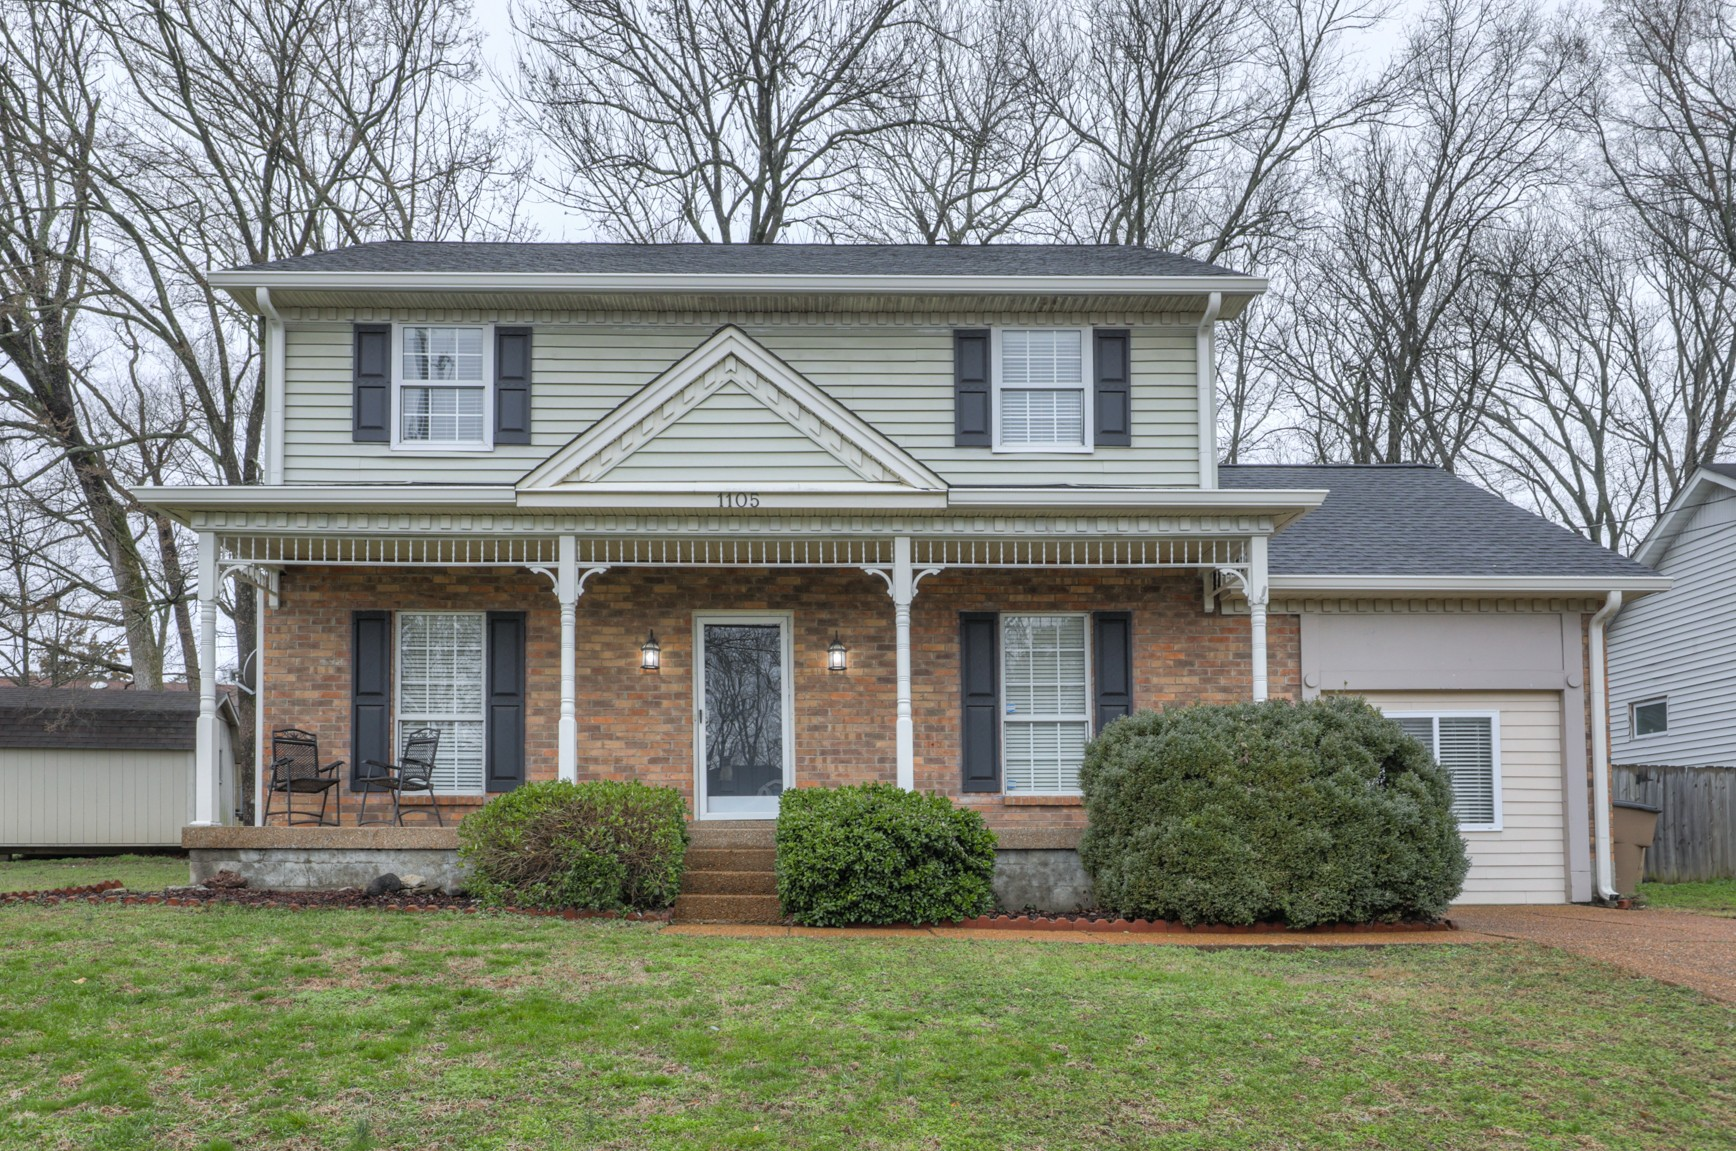 1105 Sebetha Ct, Antioch, TN 37013 - Antioch, TN real estate listing